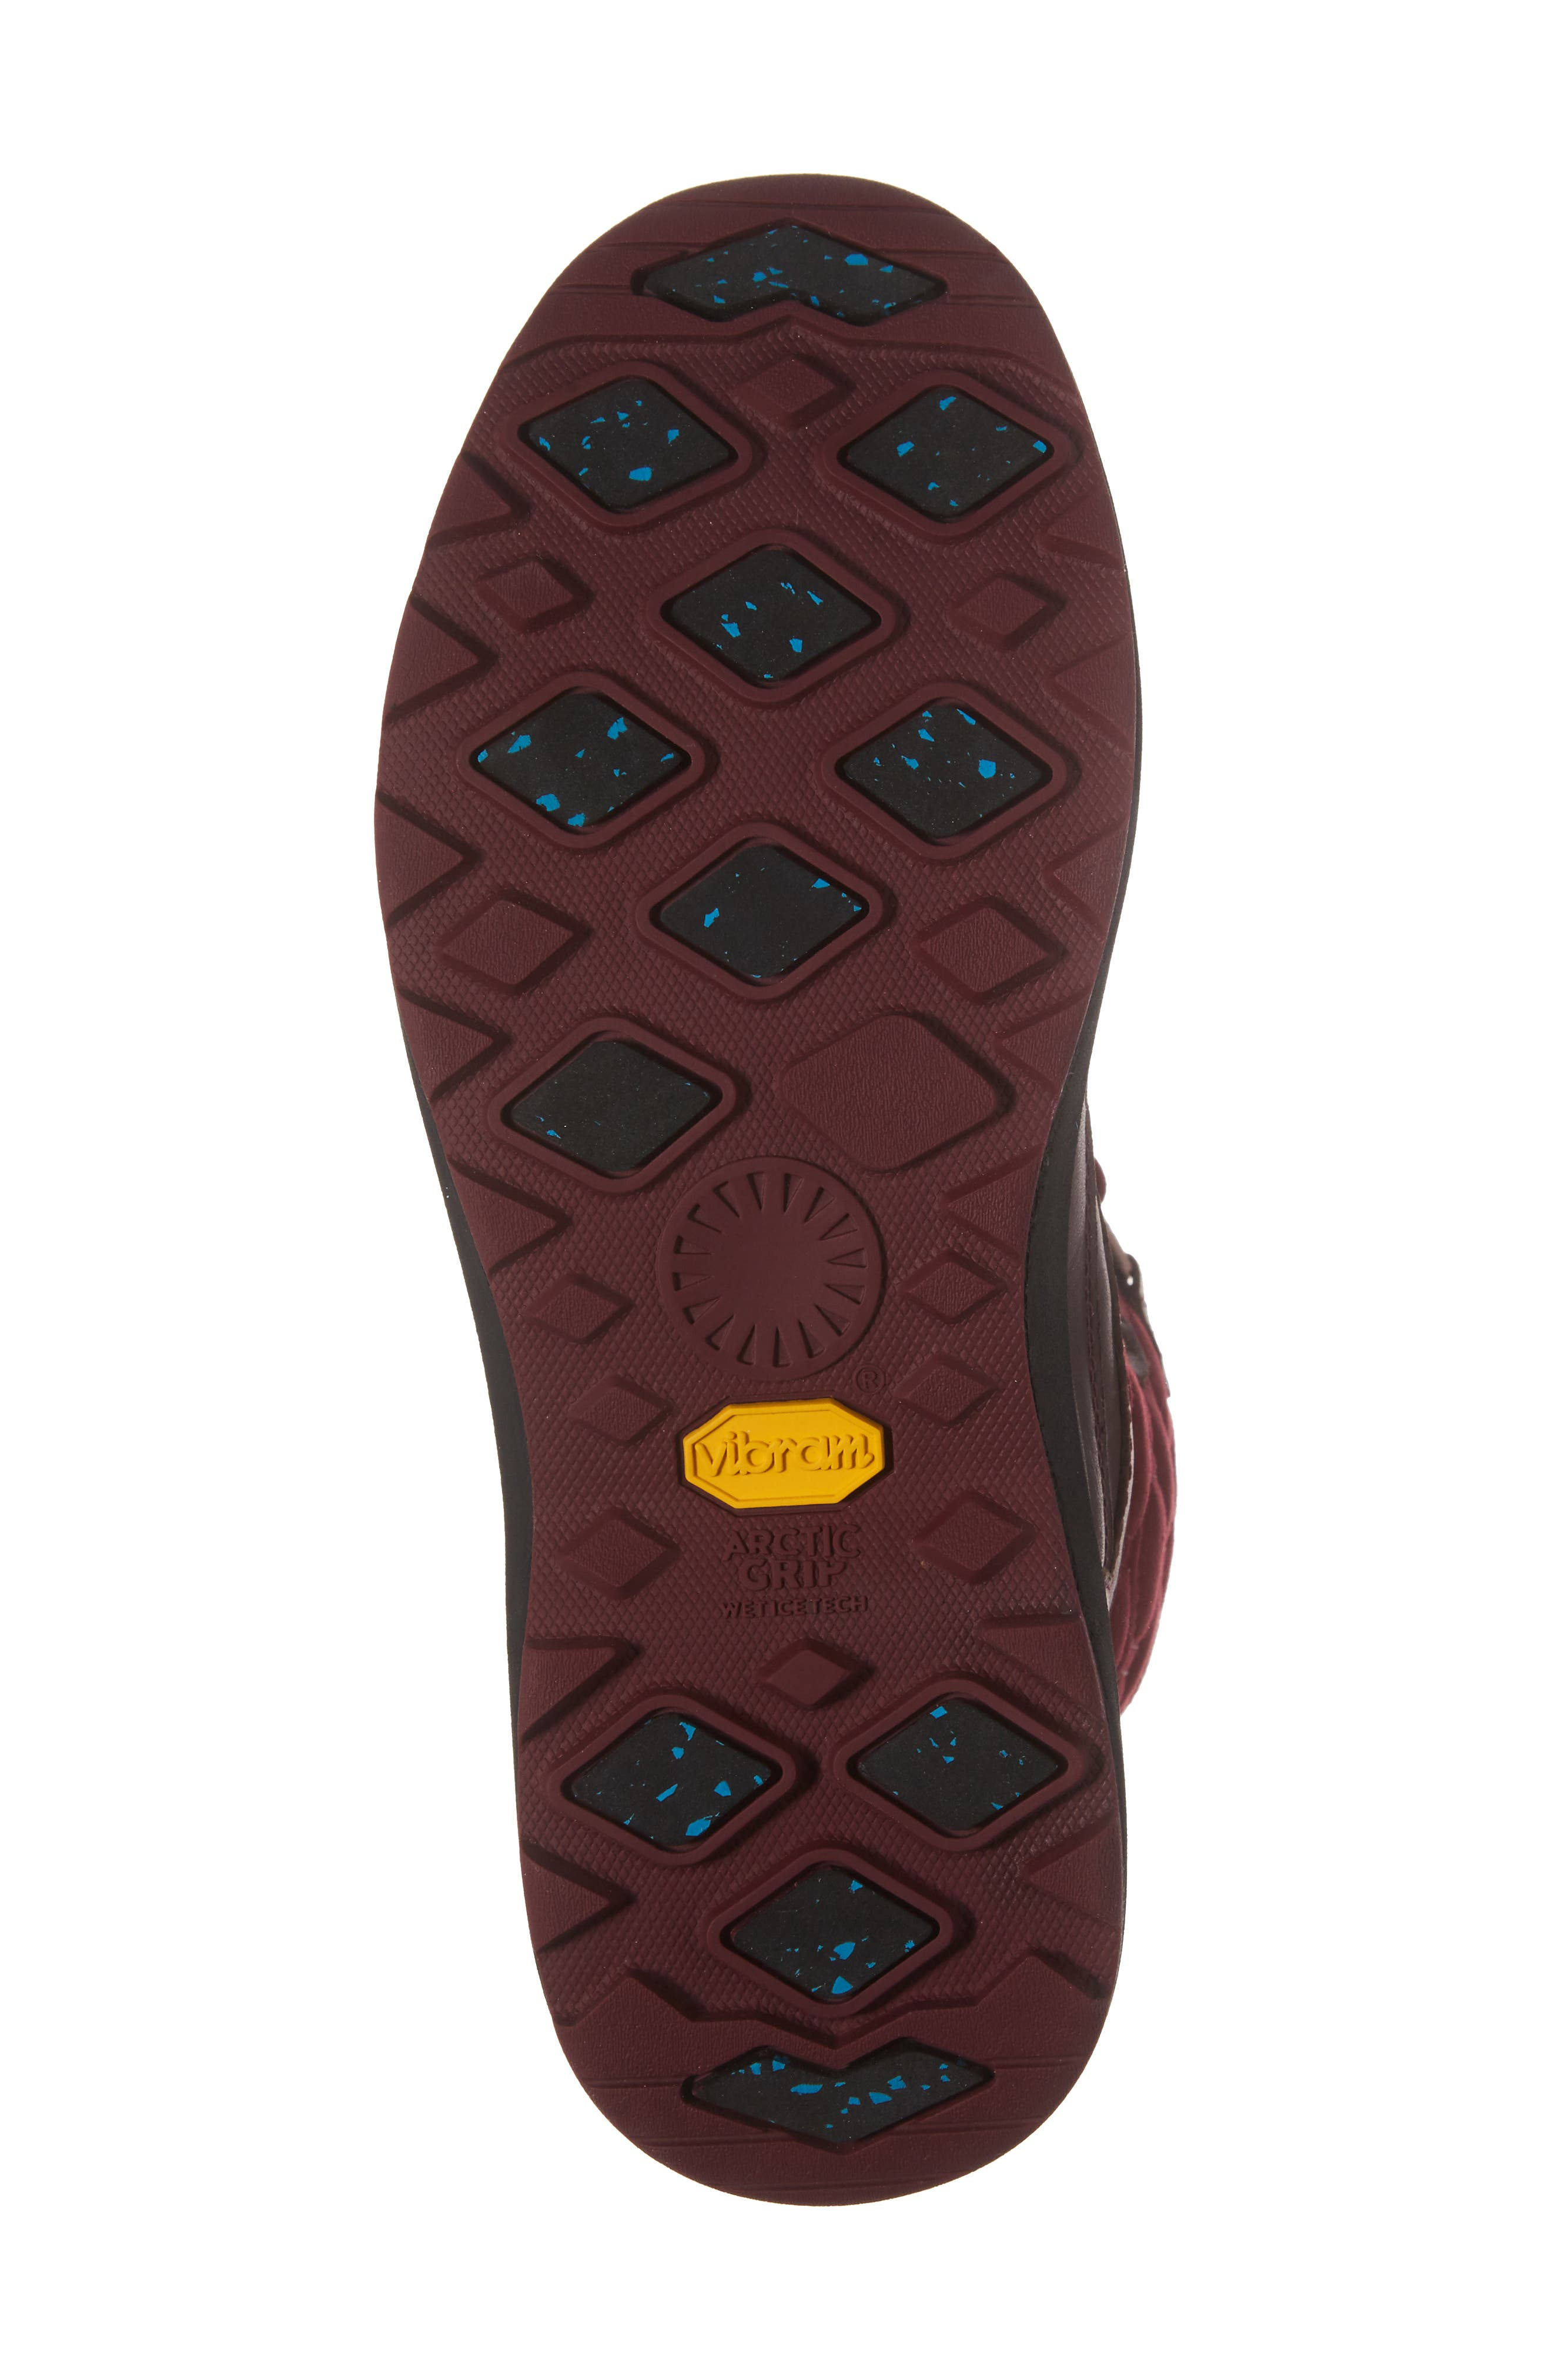 Lachlan Waterproof Insulated Snow Boot,                             Alternate thumbnail 18, color,